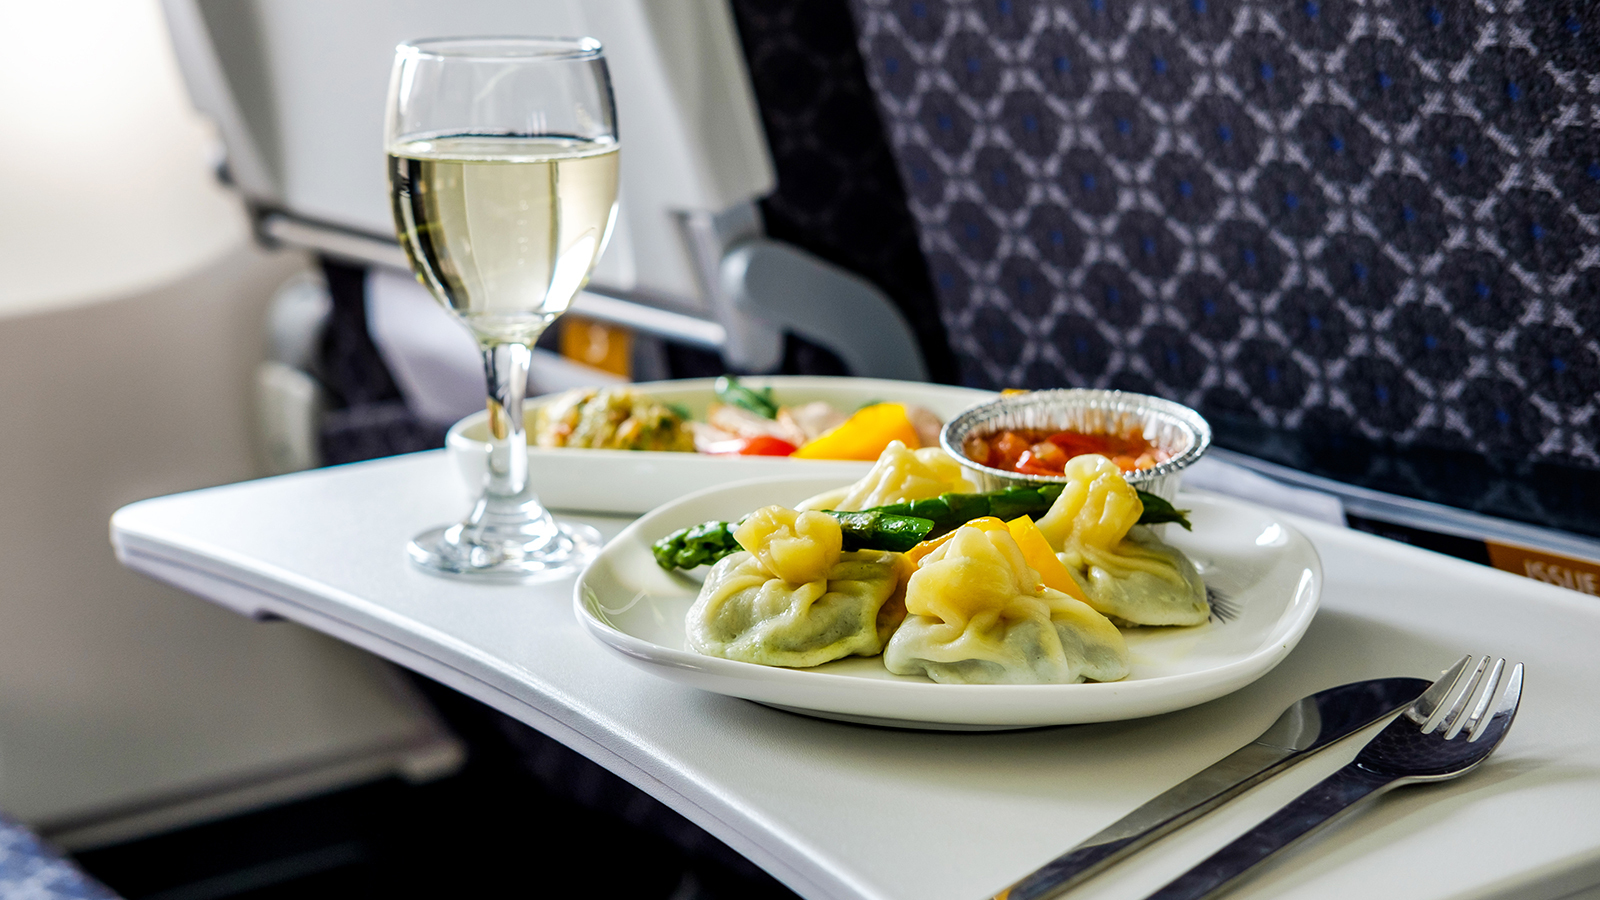 Wines On A Plane: Does Drinking Affect You Differently While Flying? photo